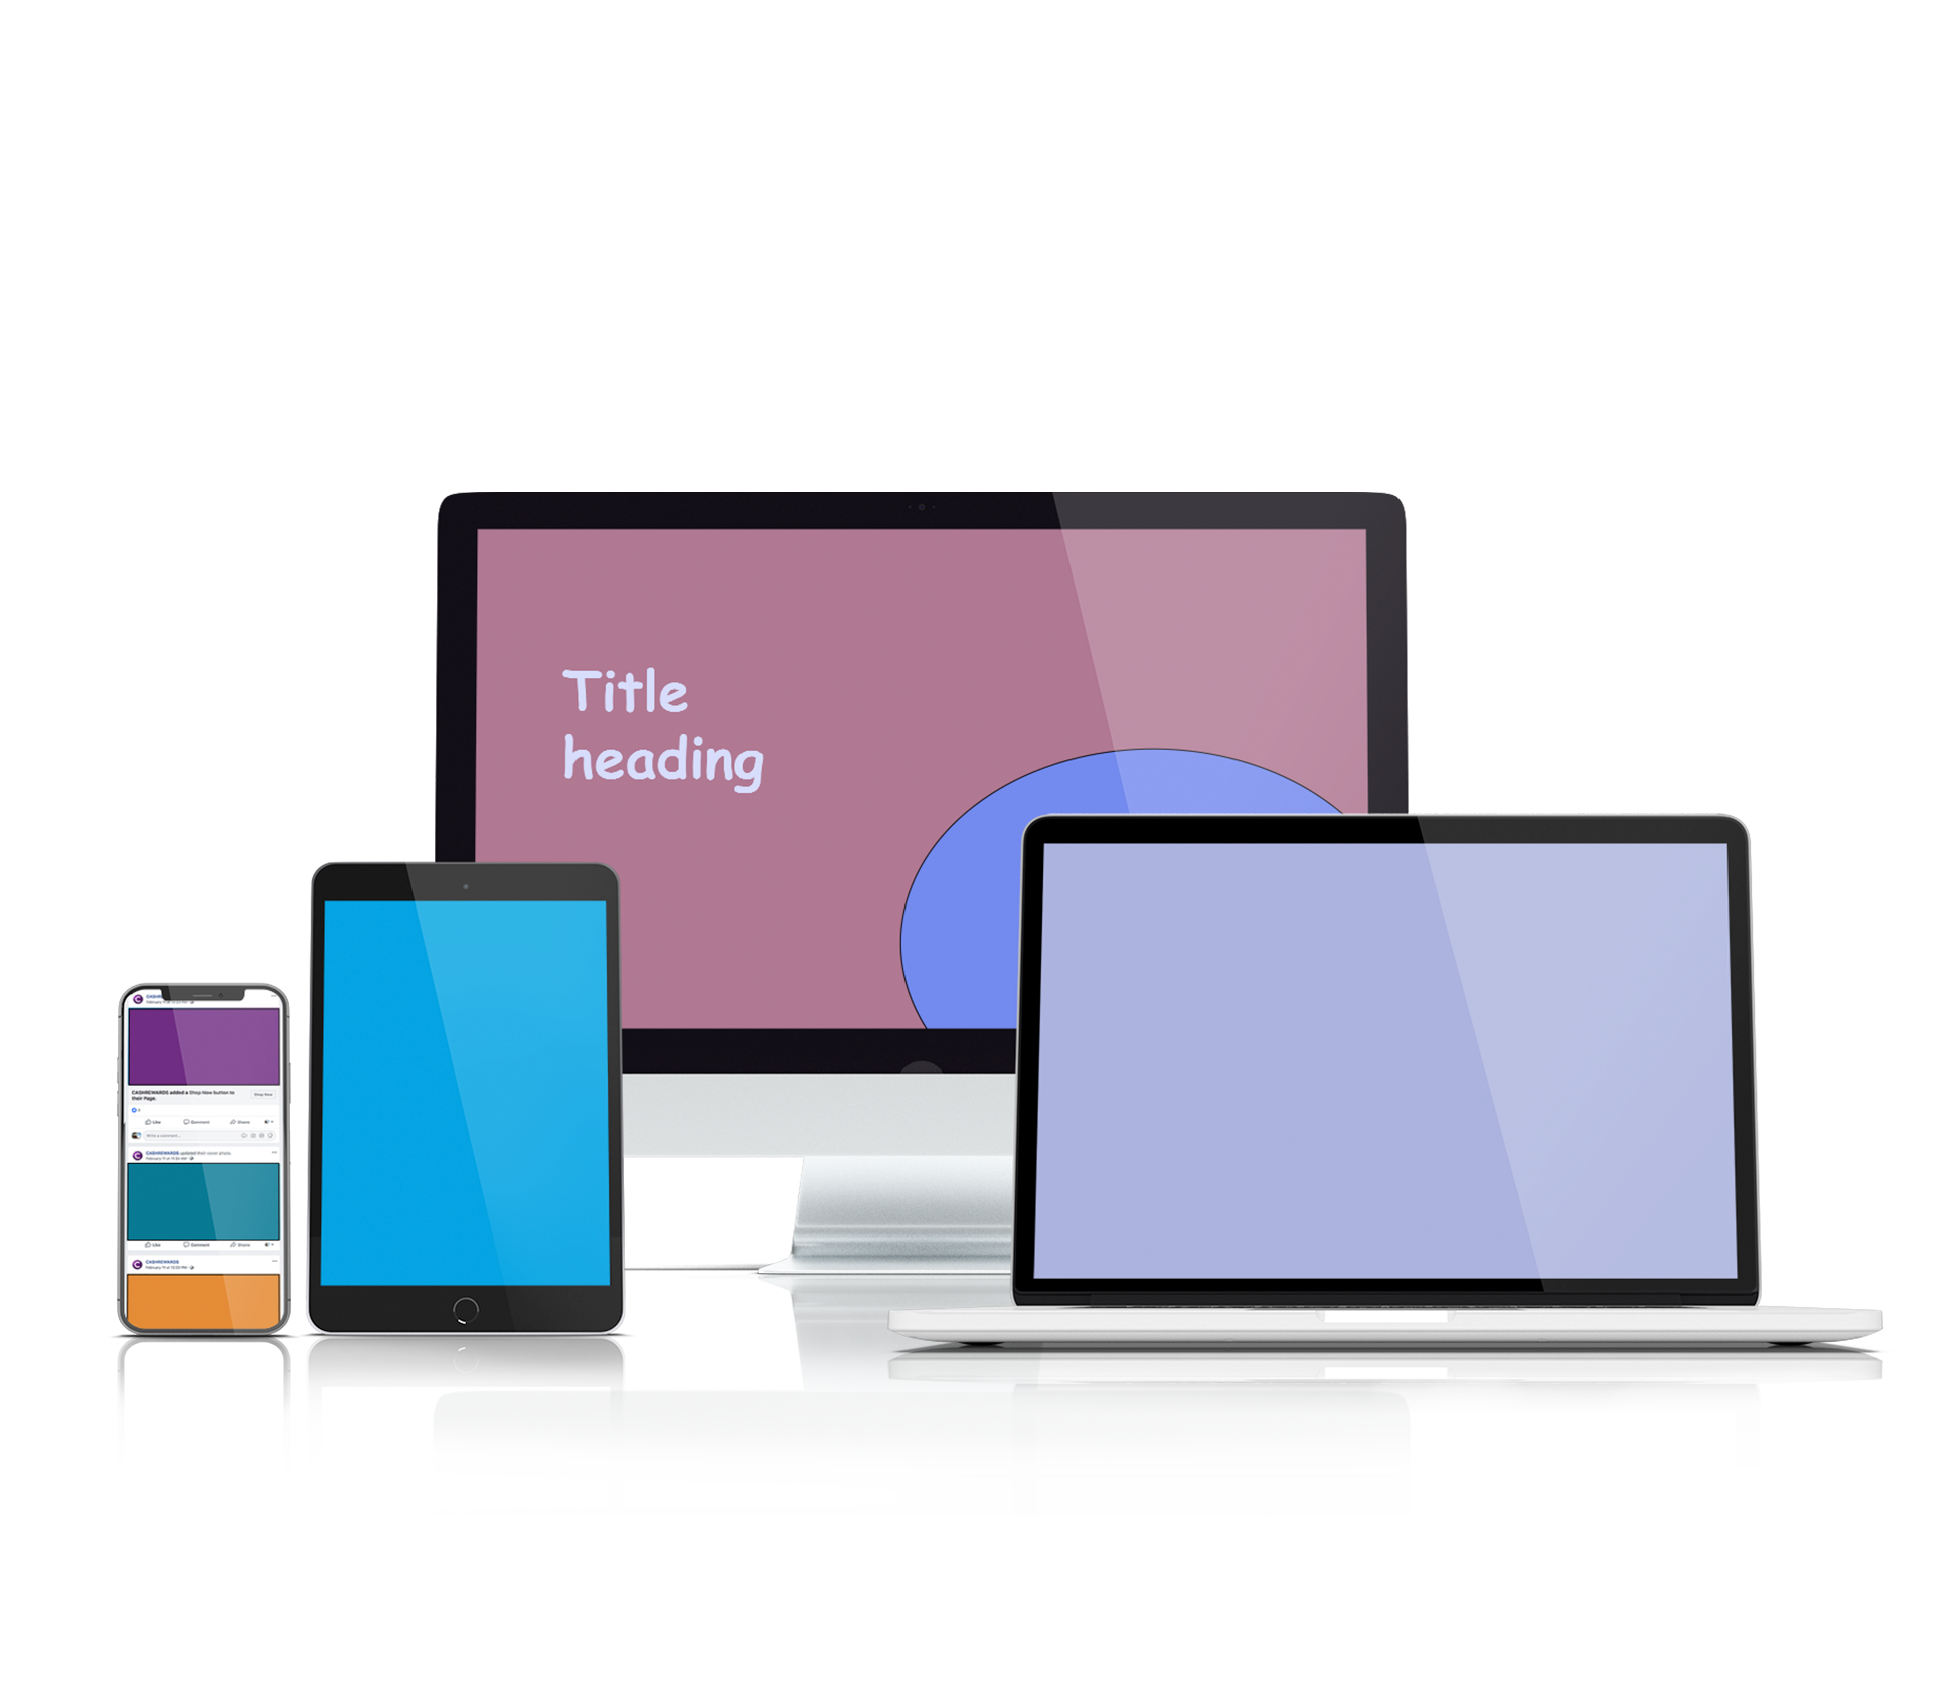 Mockup of design assets on digital devices before it has been designed by Persuaders